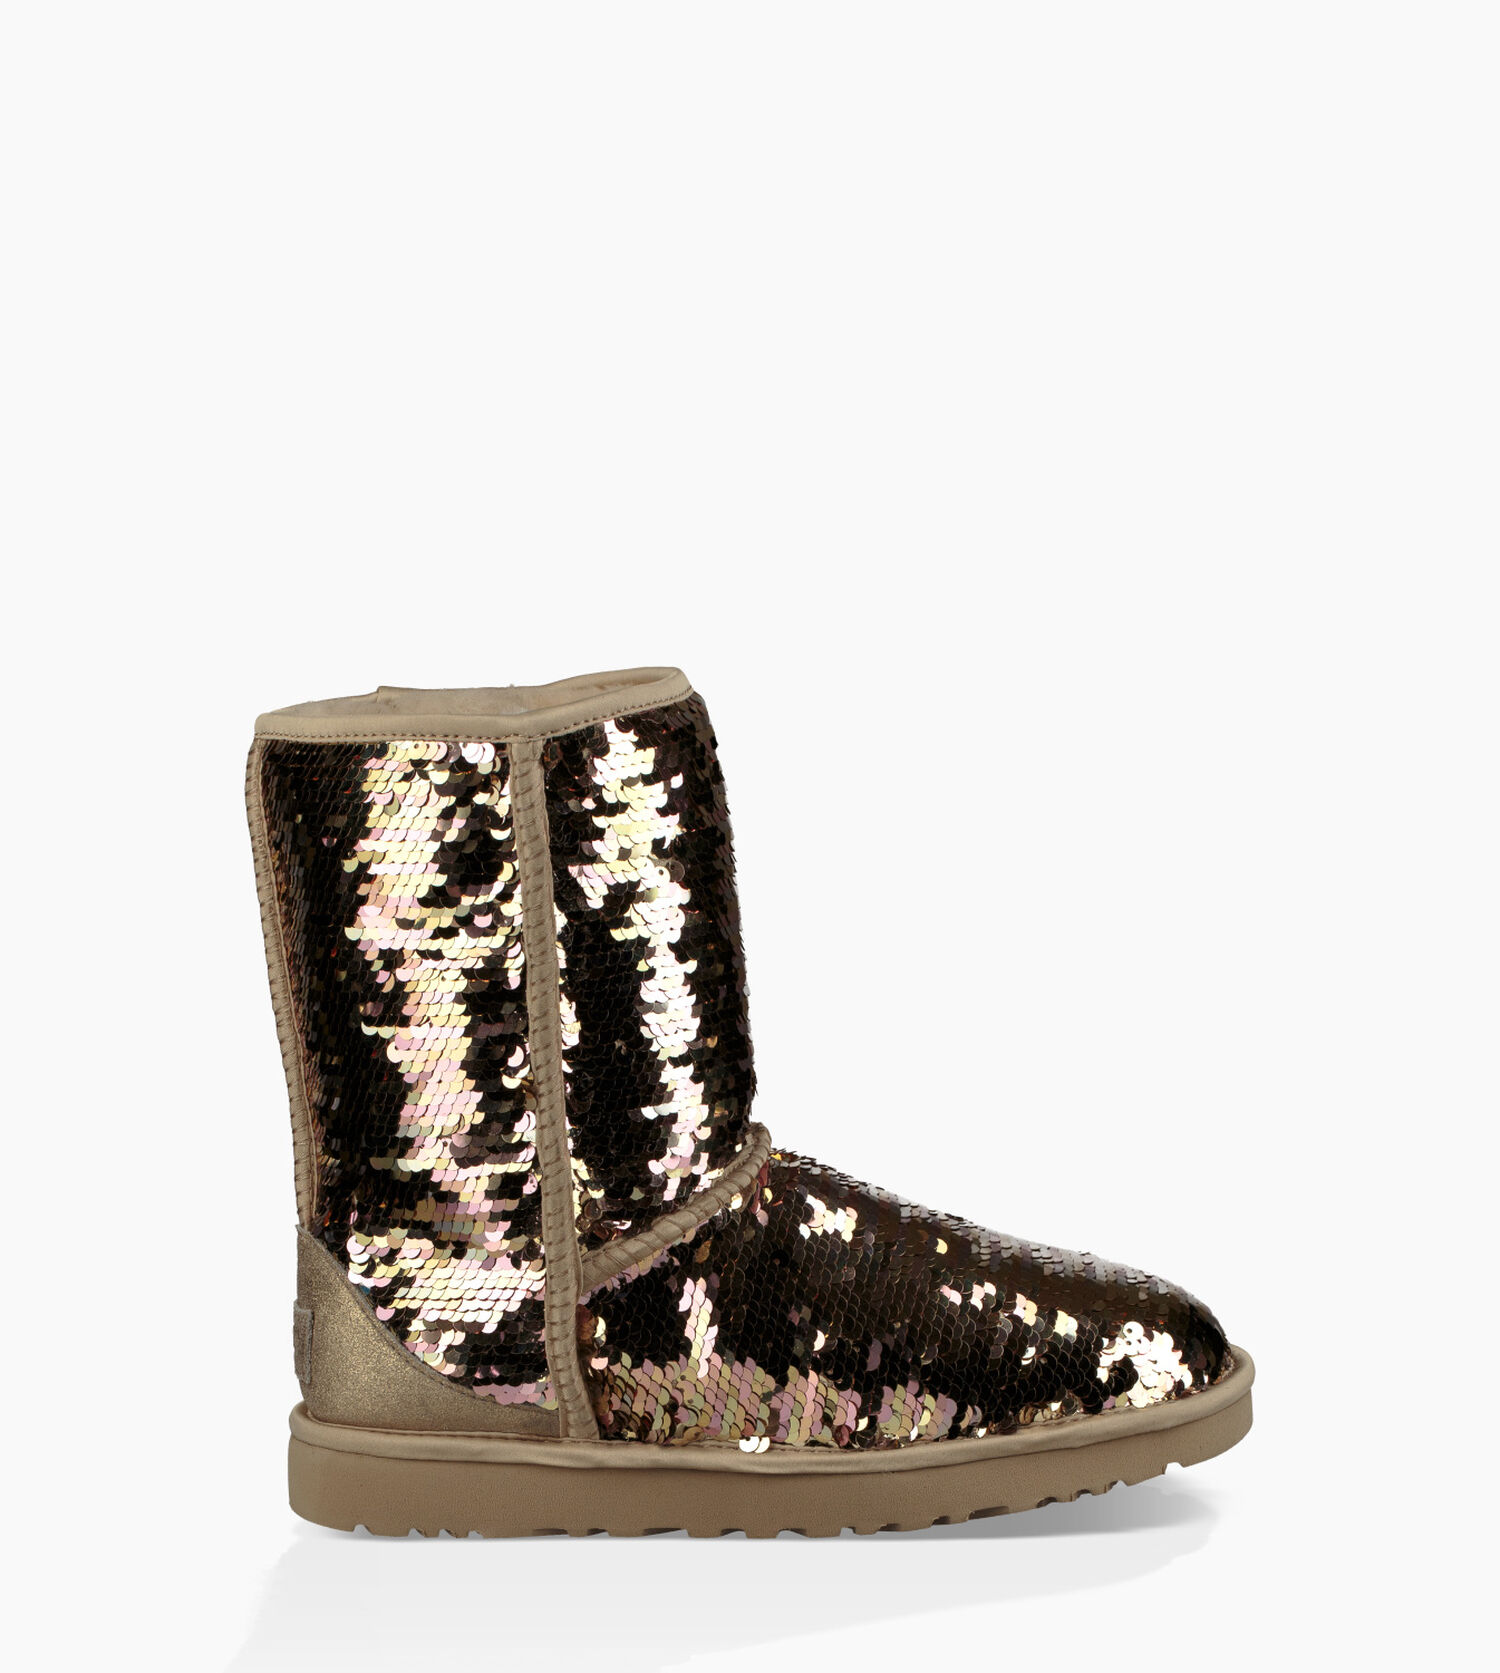 b0eed417dbb Women's Share this product Classic Short Sequin Boot